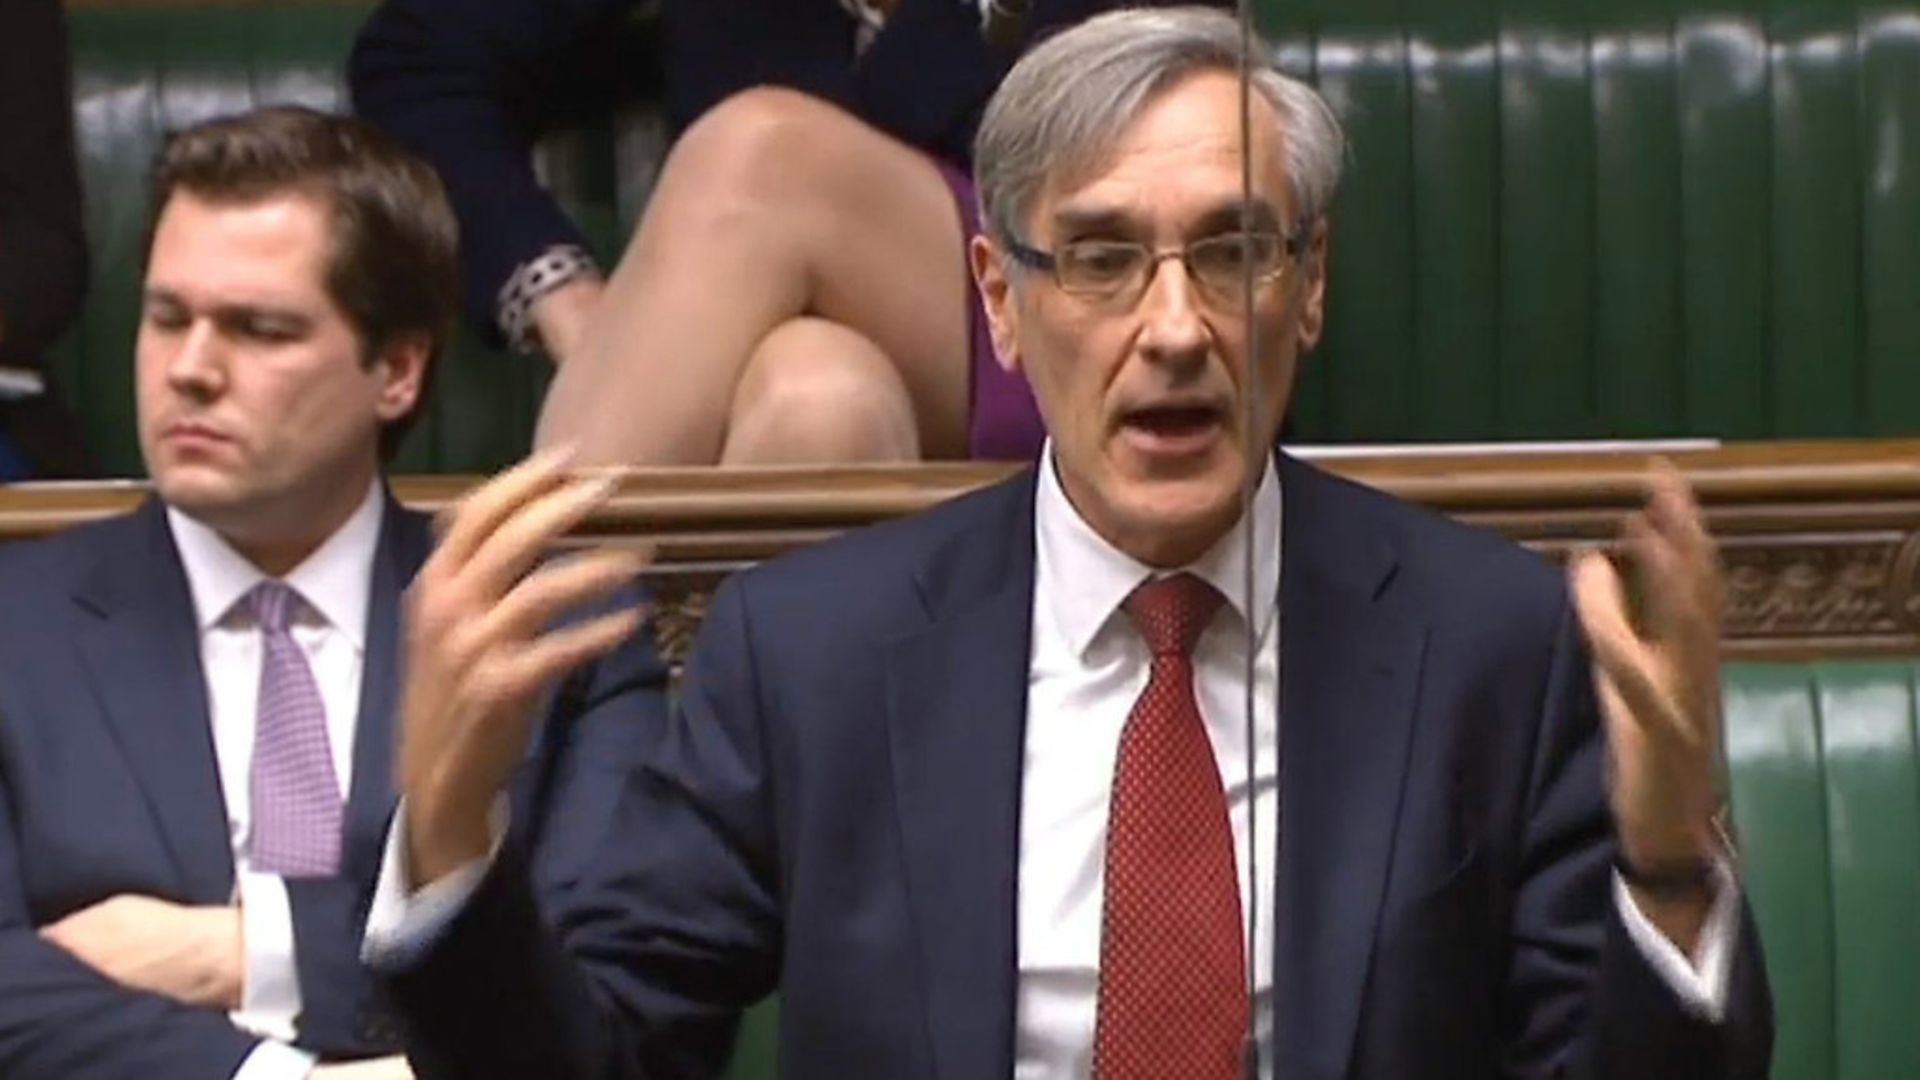 John Redwood speaks in the House of Commons. - Credit: PA Archive/PA Images